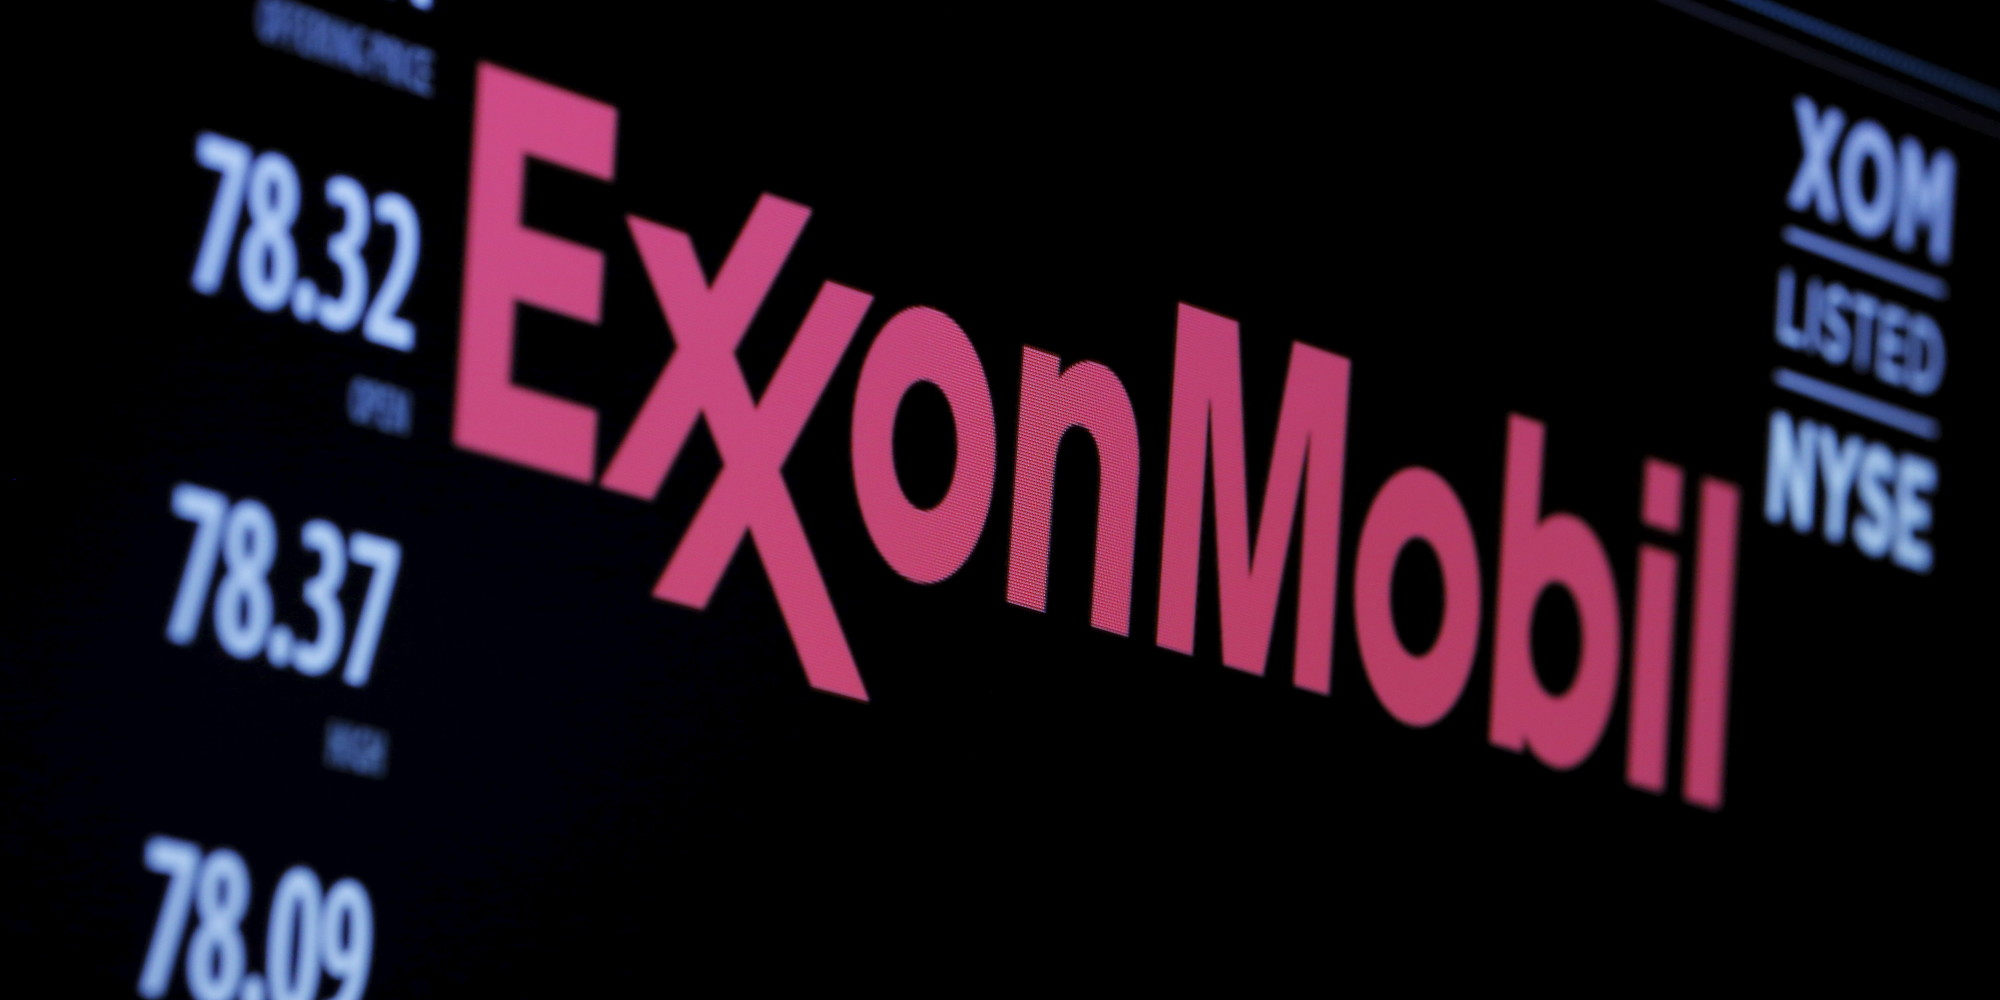 exxonmobil s latest campaign to stymie federal climate action